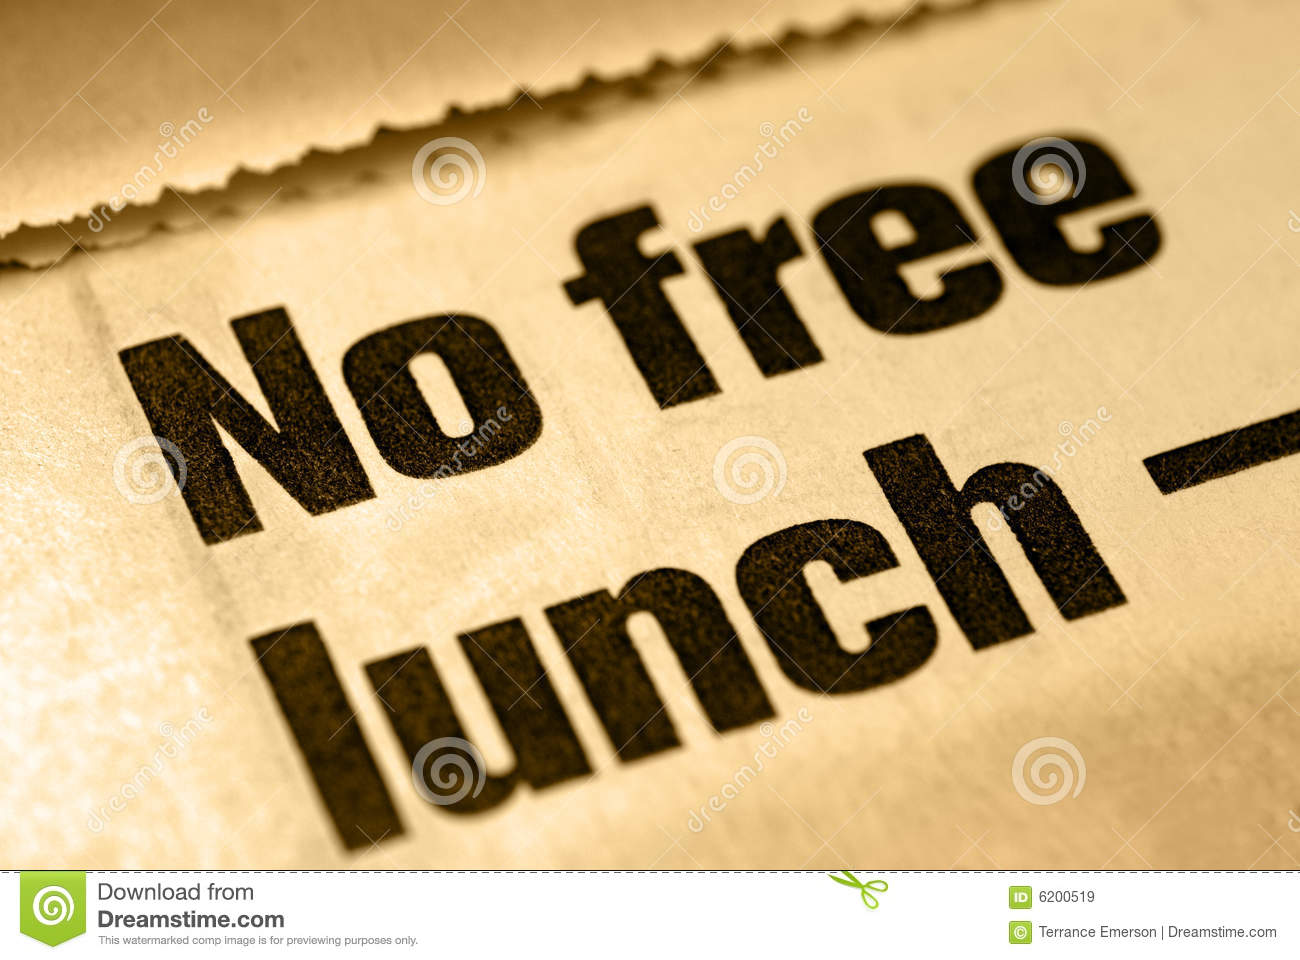 Stock options are not a free lunch